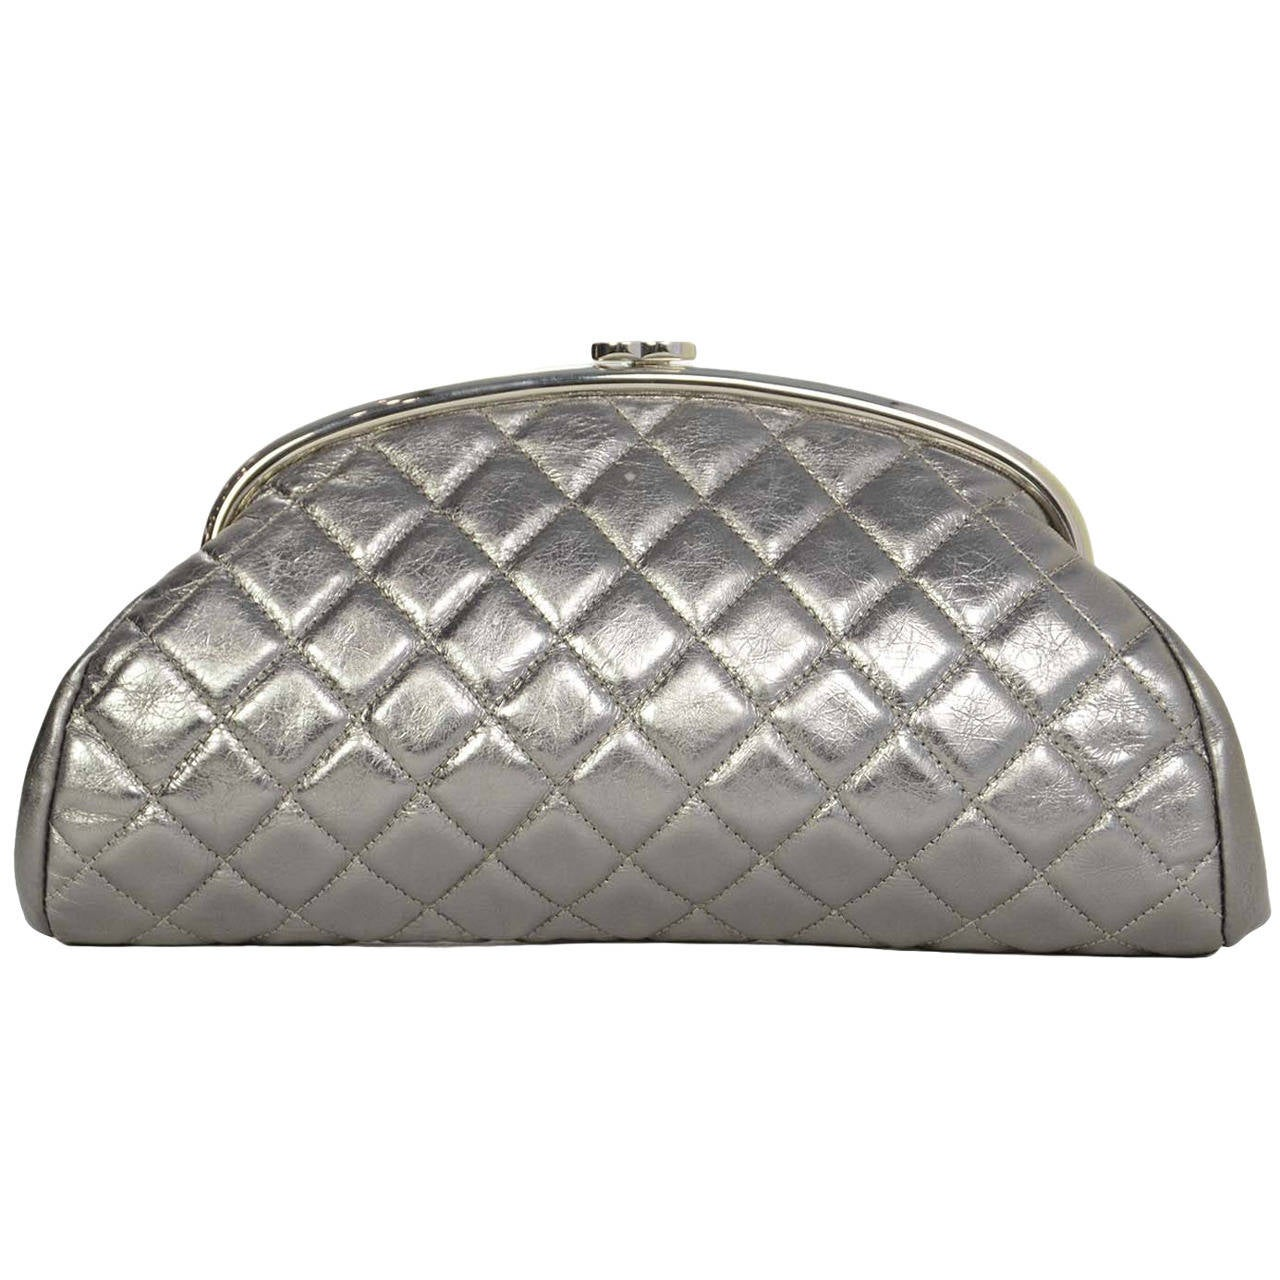 2c472e580be4 CHANEL Metallic Pewter Quilted Timeless Clutch Bag SHW at 1stdibs